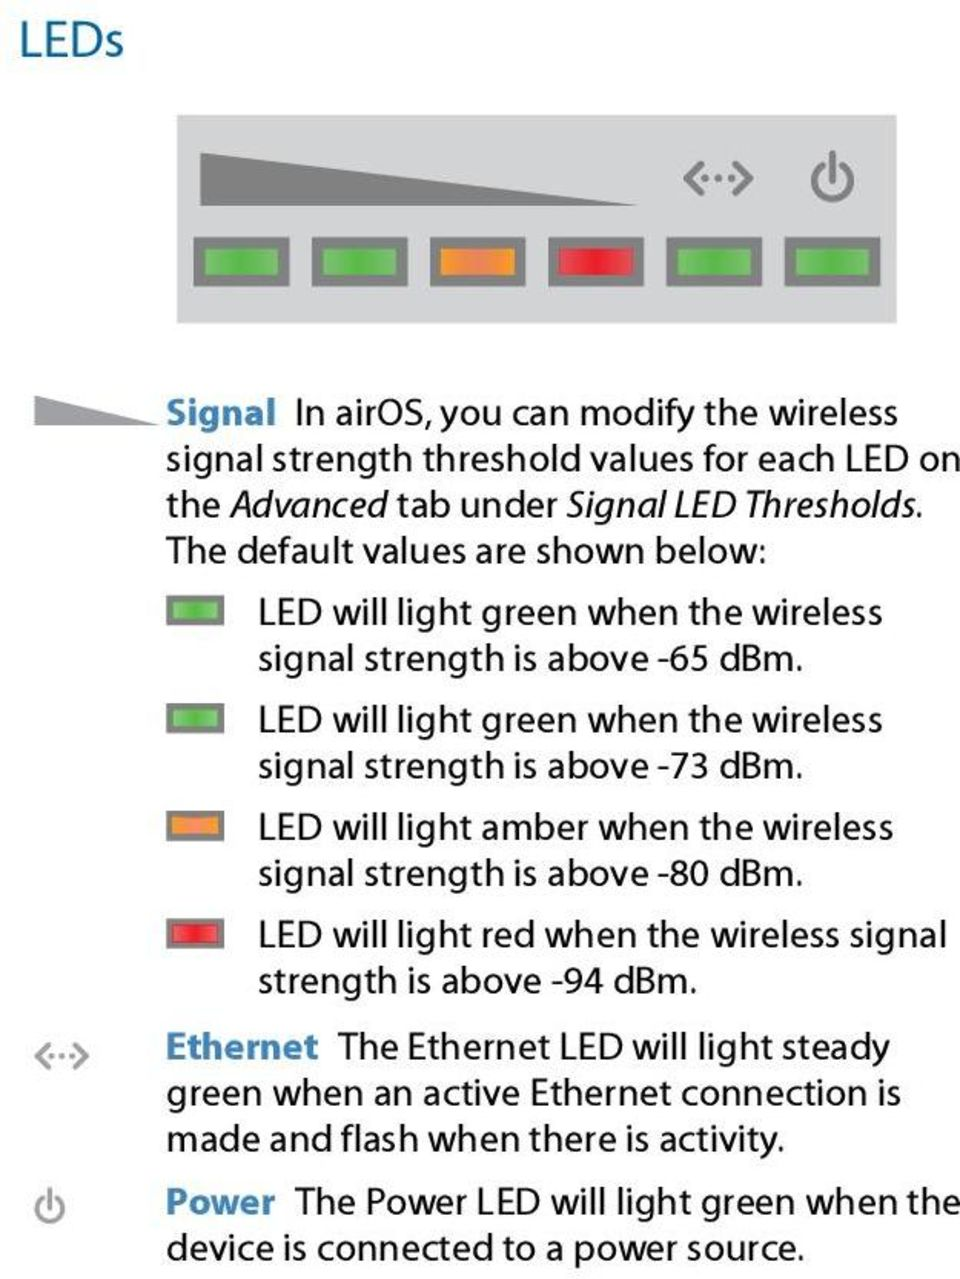 LED will light green when the wireless signal strength is above -73 dbm. LED will light amber when the wireless signal strength is above -80 dbm.